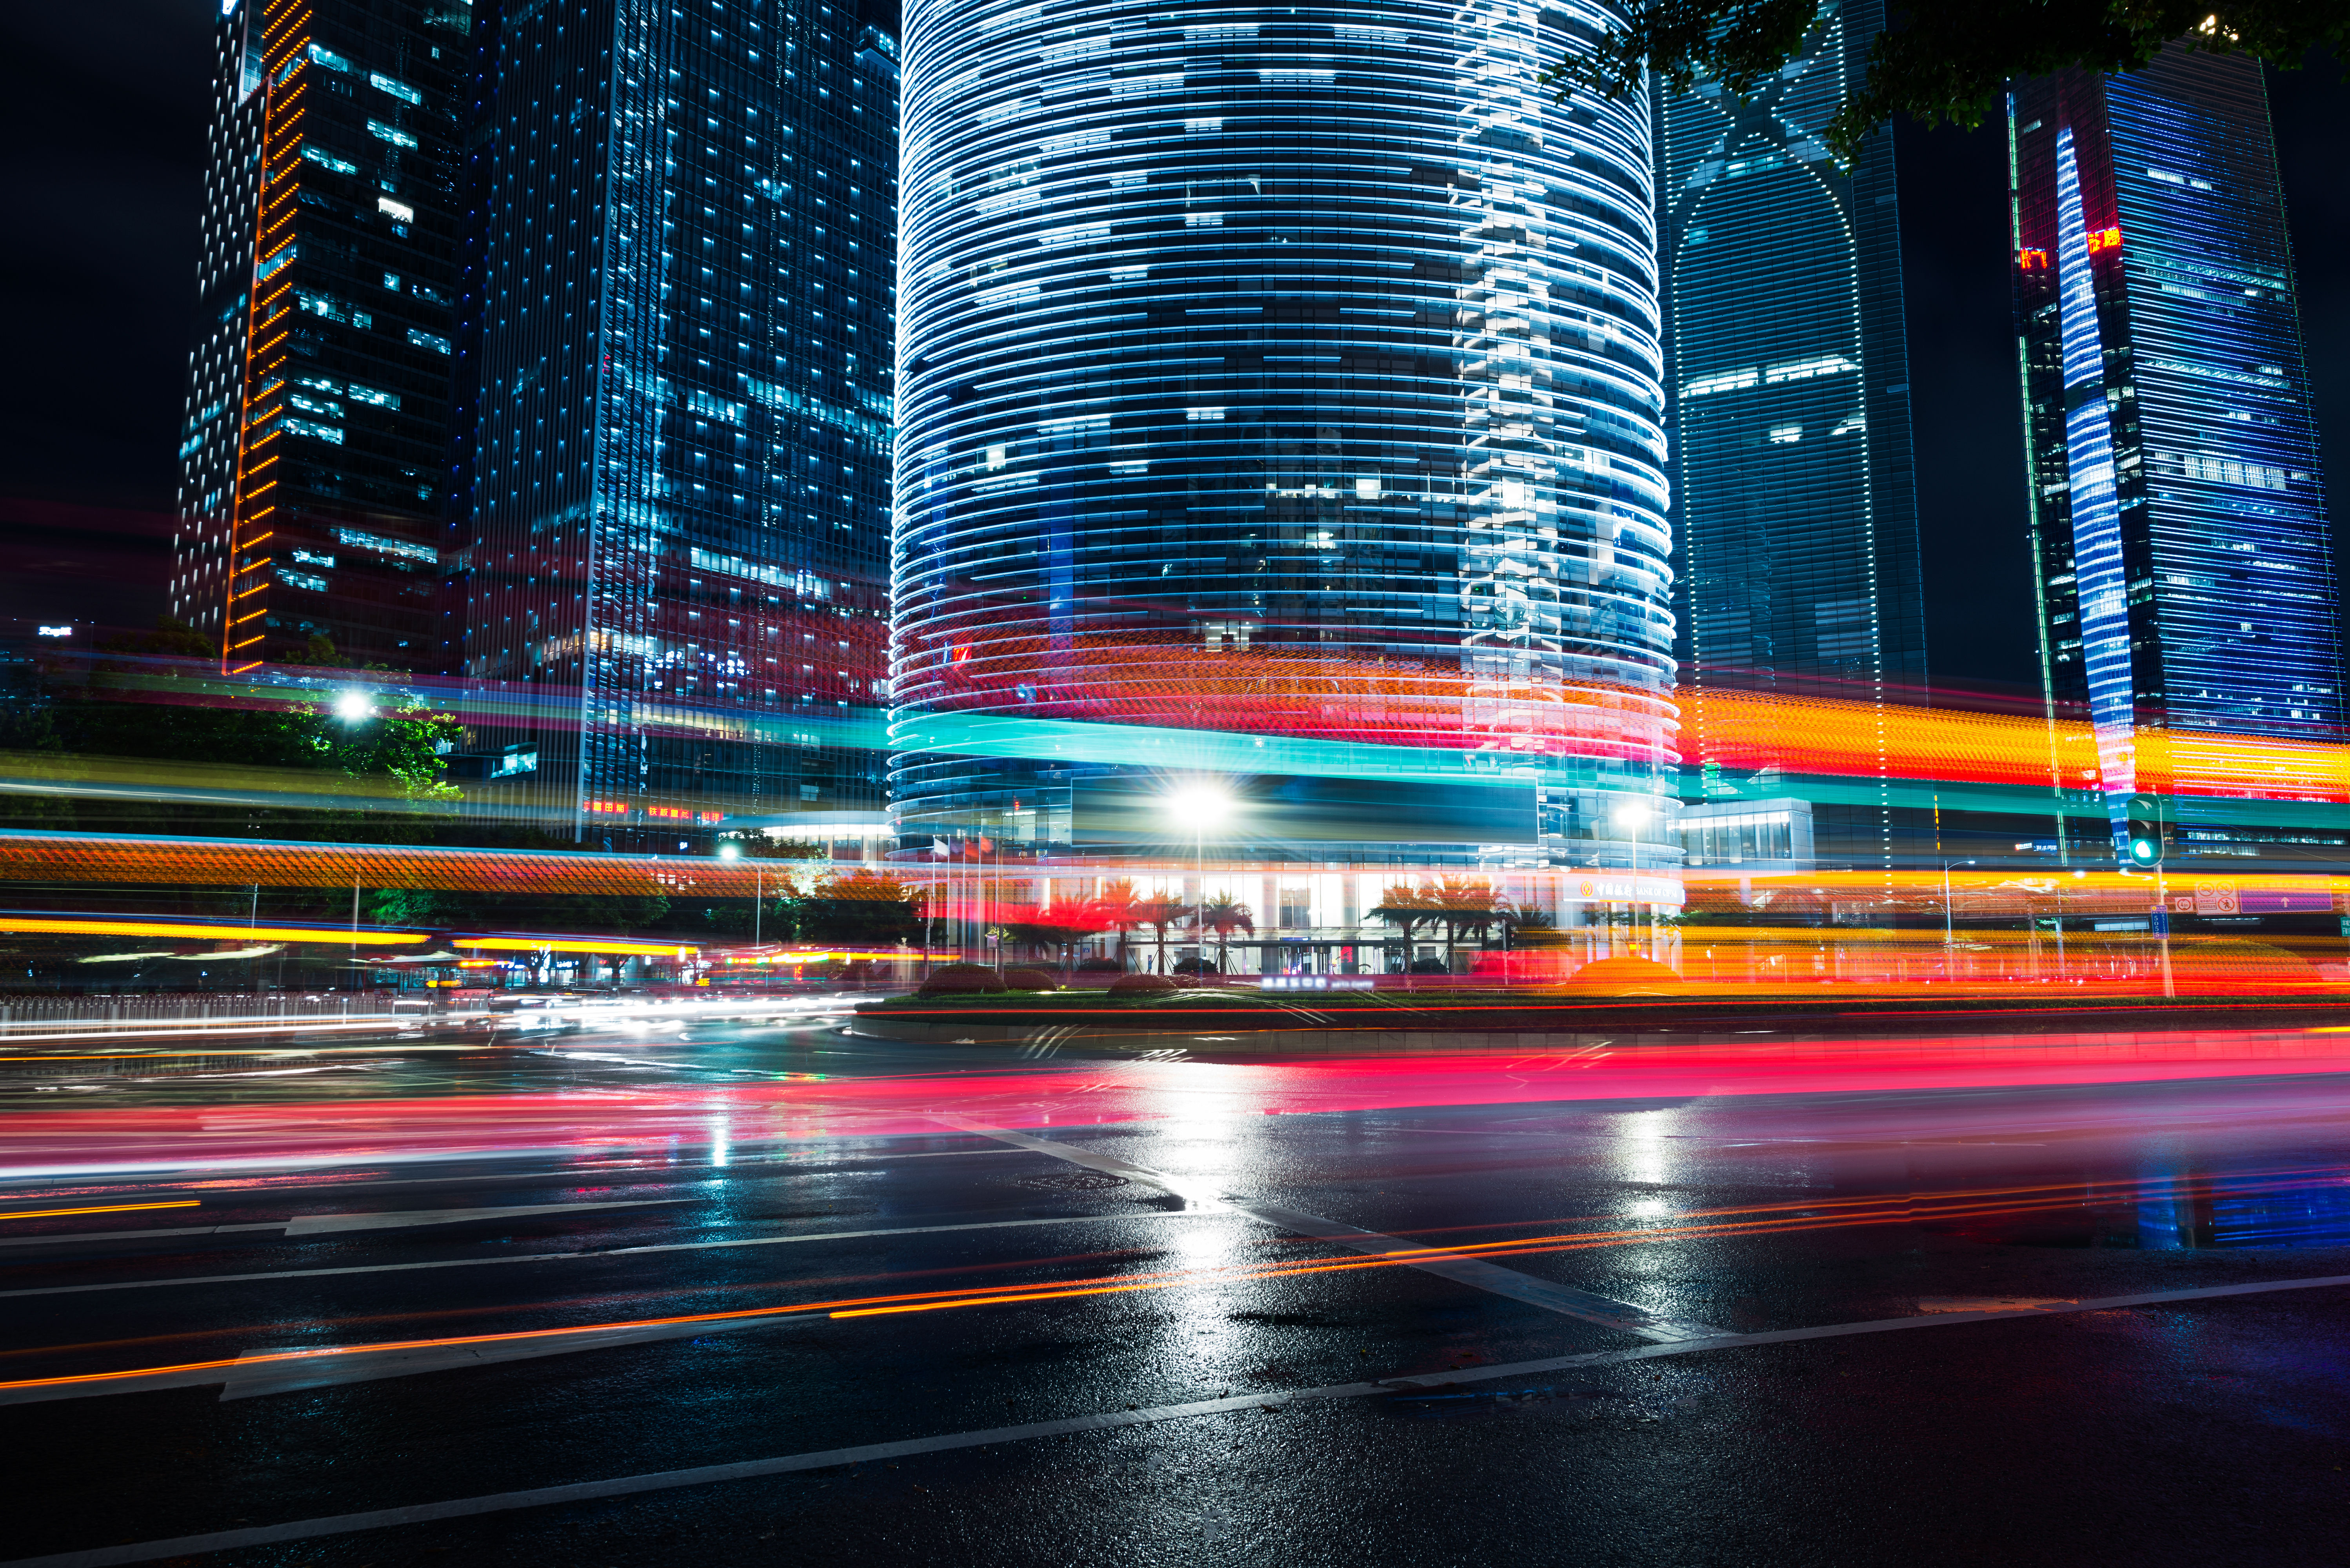 Interview with Peter Larsen on the rise of Smart Cities